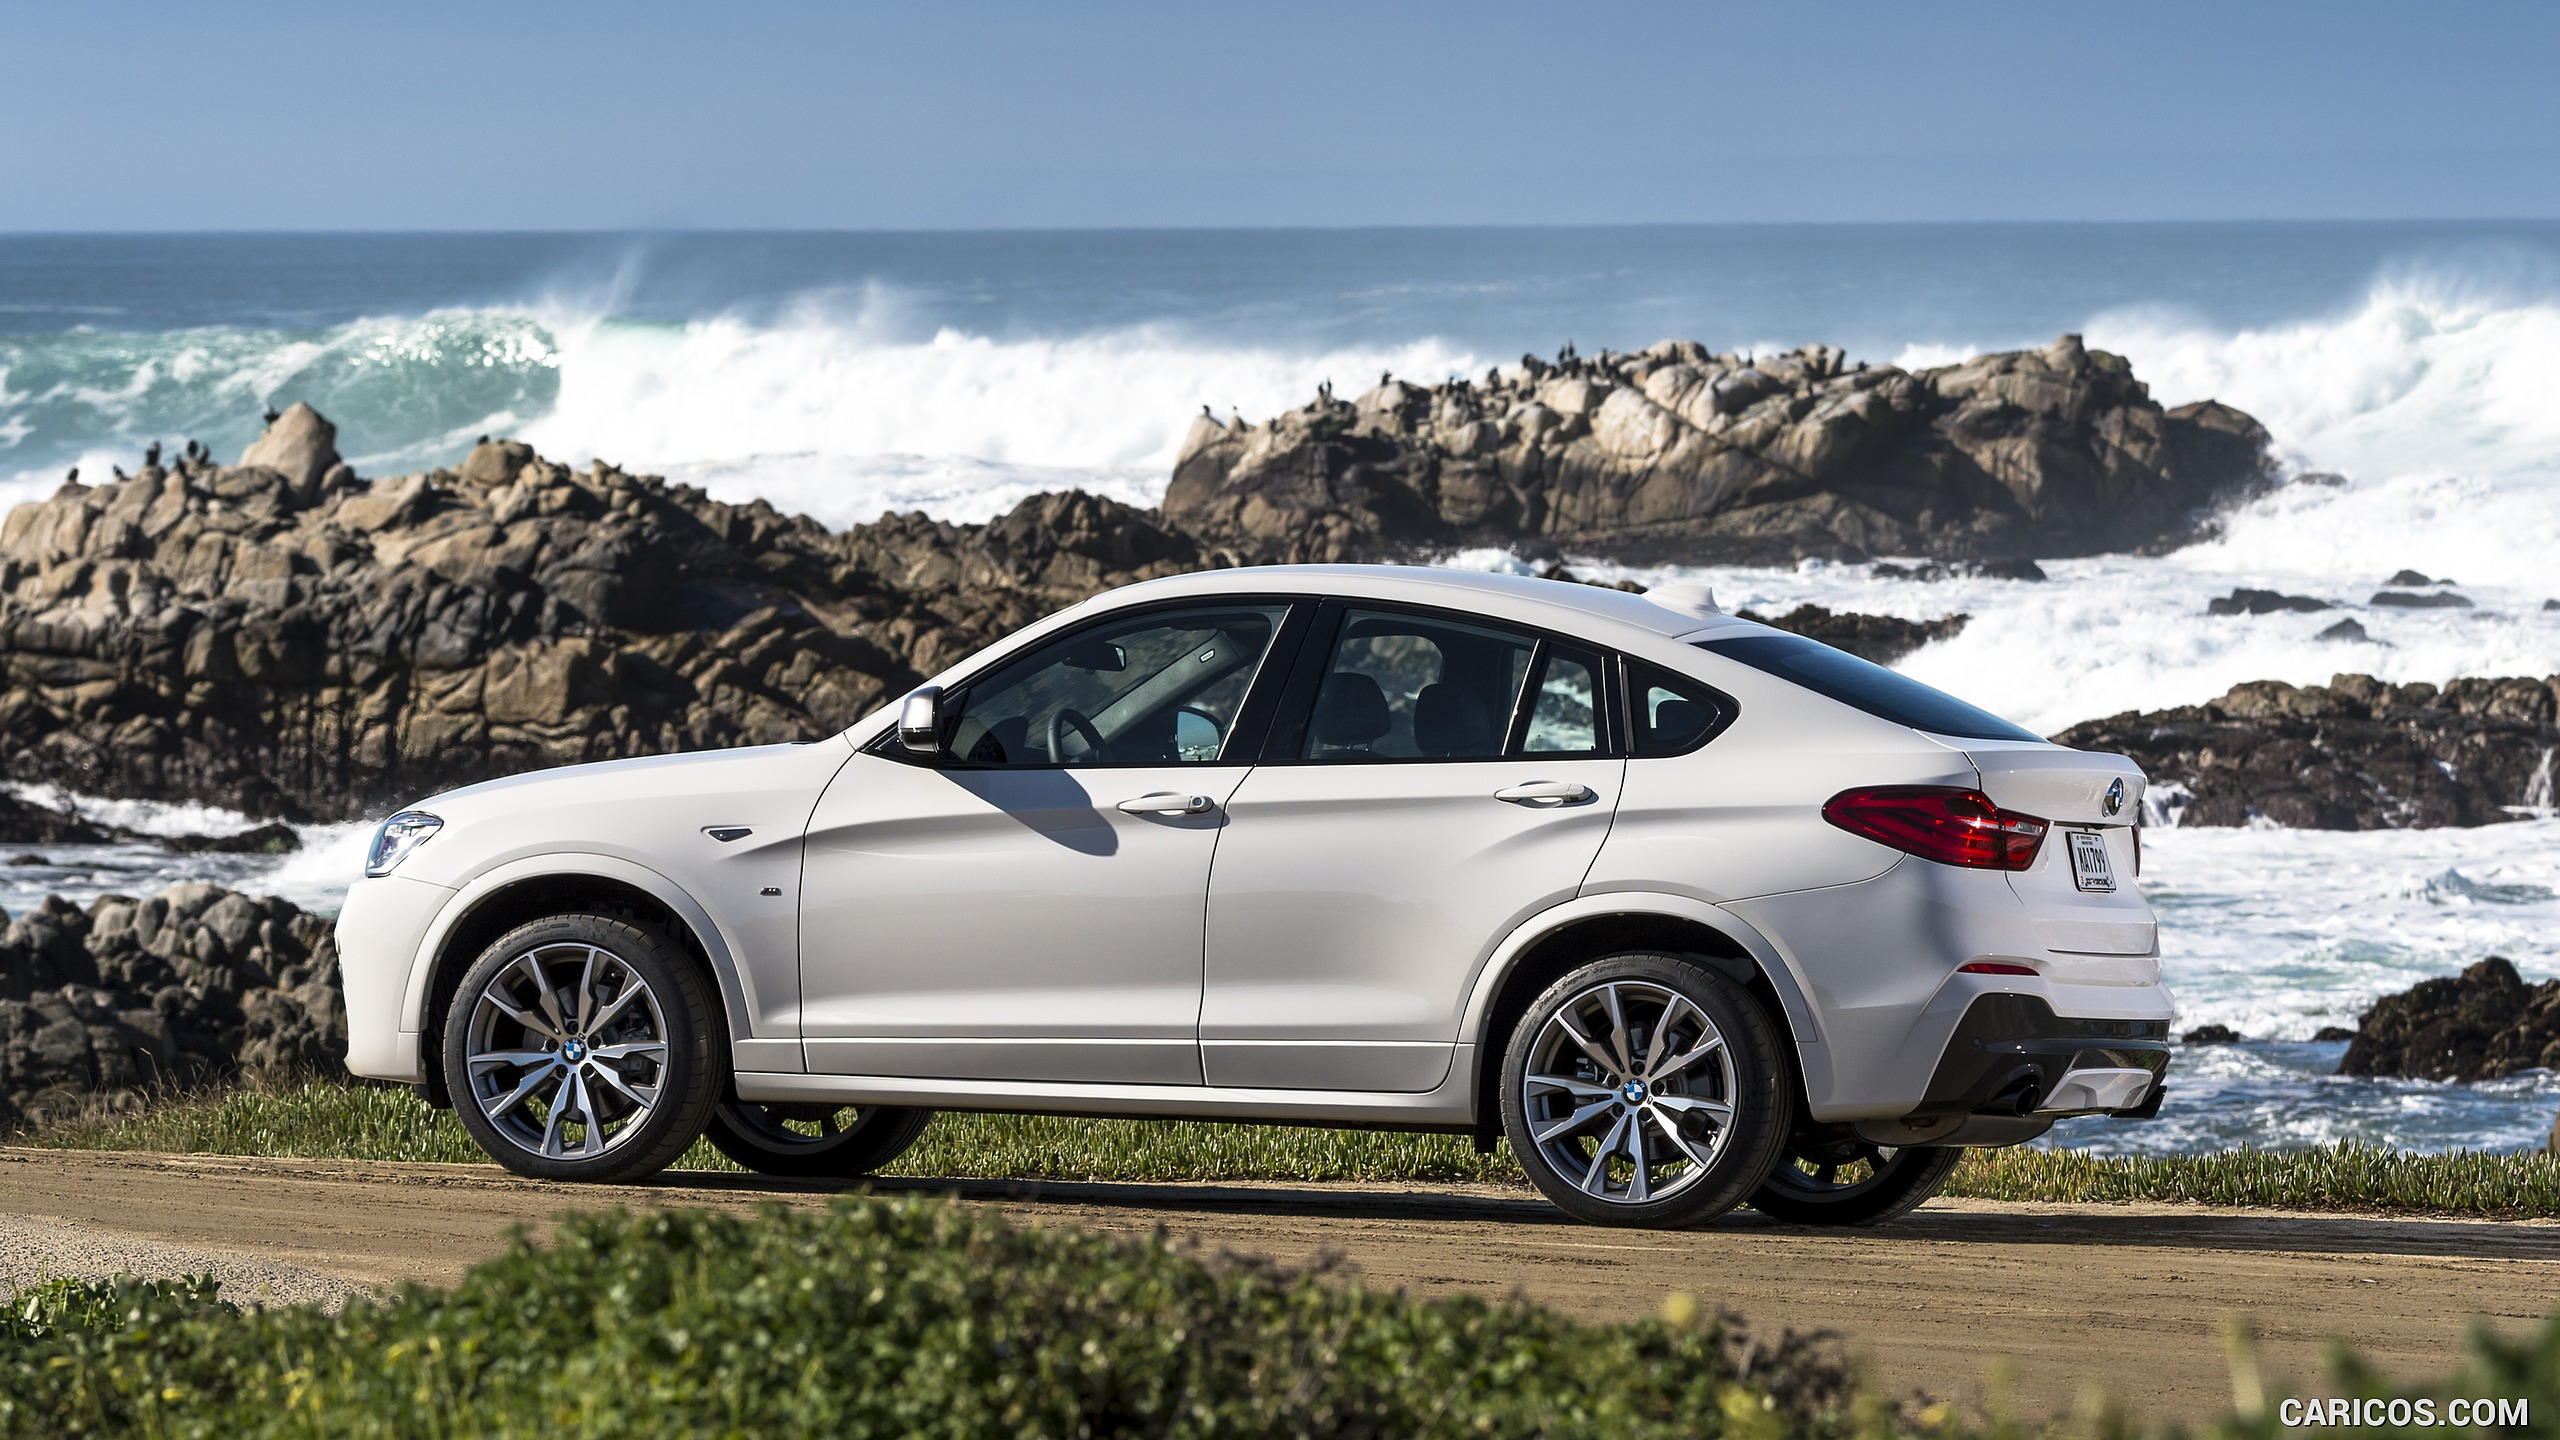 2560x1440 - BMW X4 Wallpapers 16